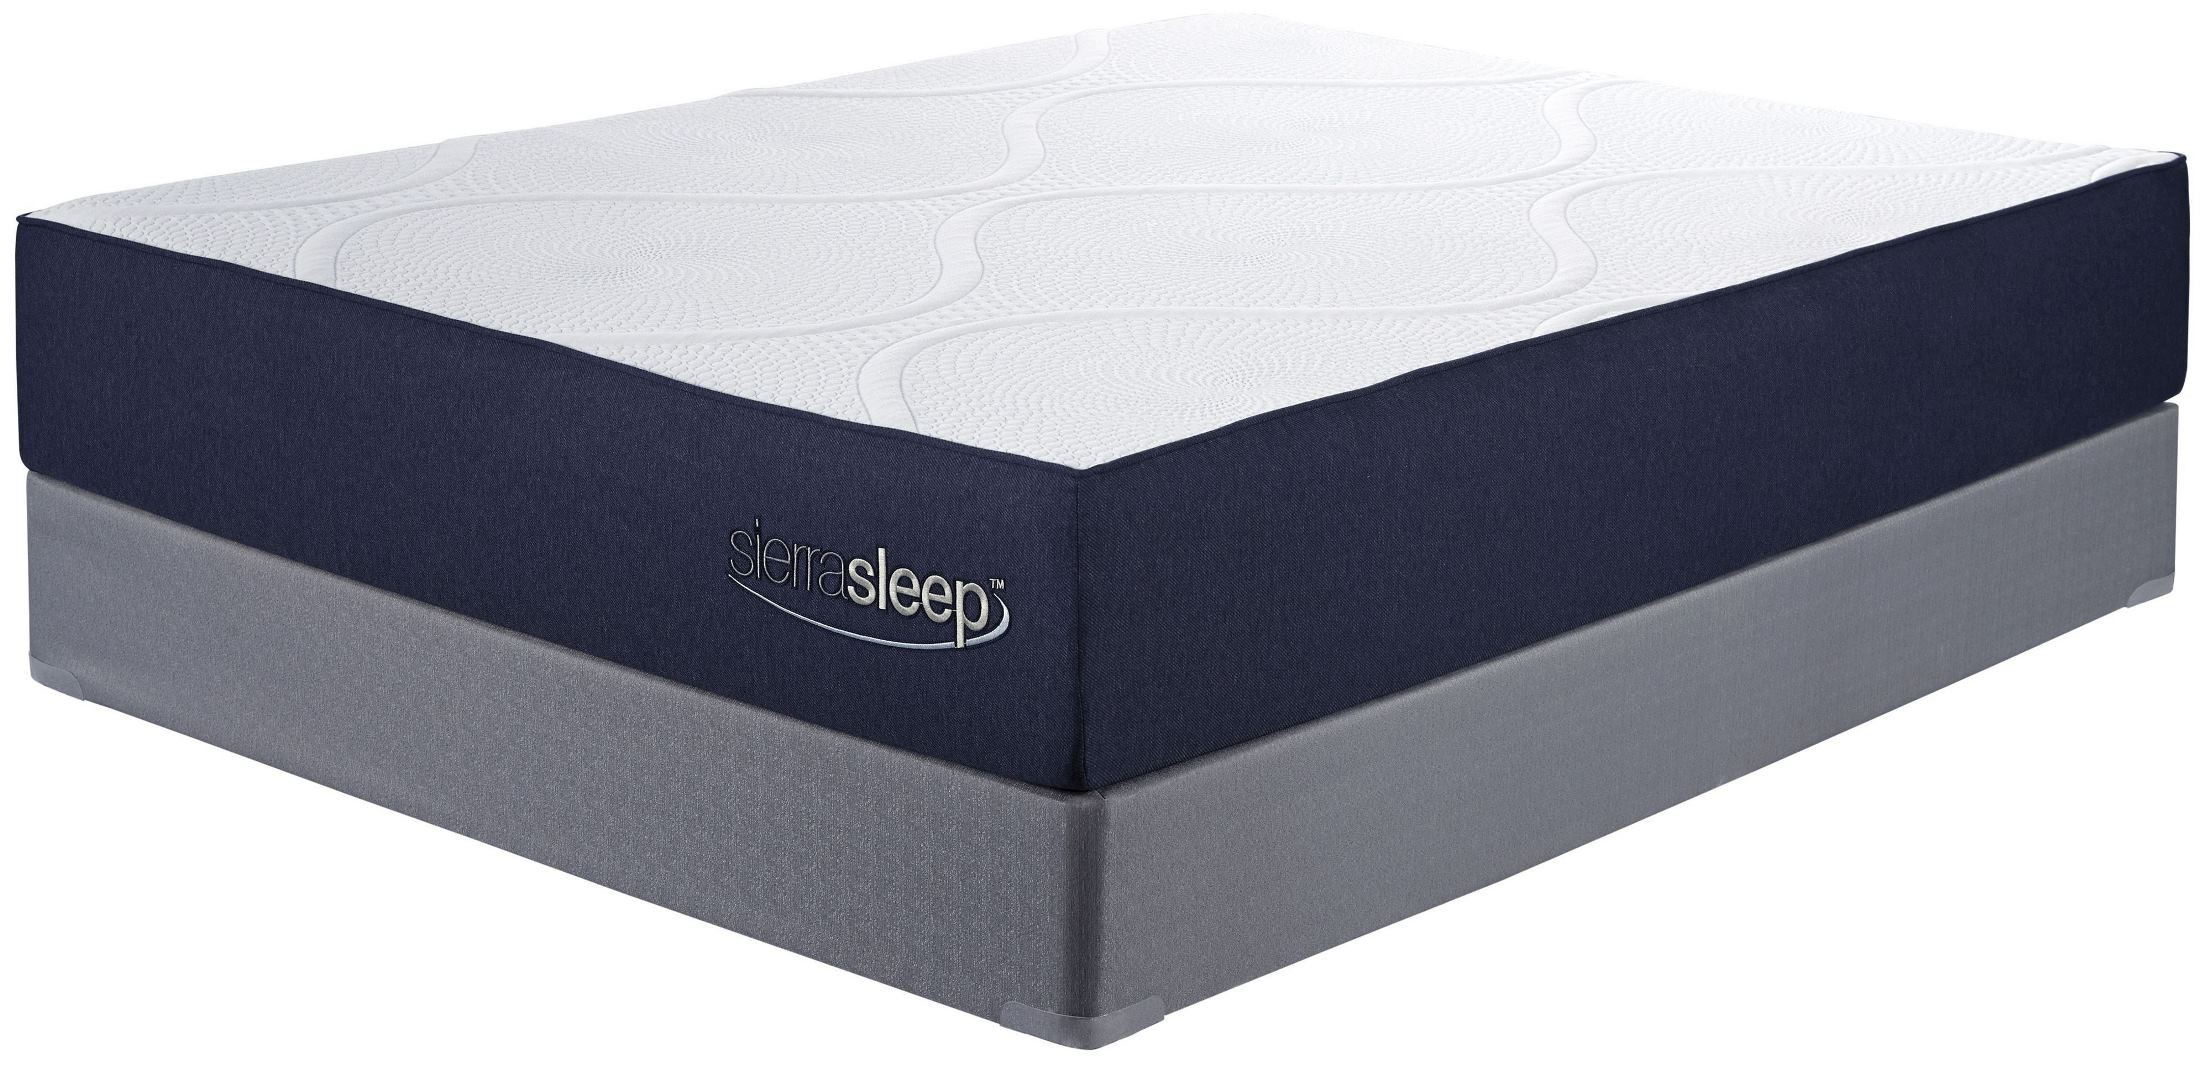 11 inch gel memory foam white cal king mattress from ashley m97351 coleman furniture Memory foam king mattress